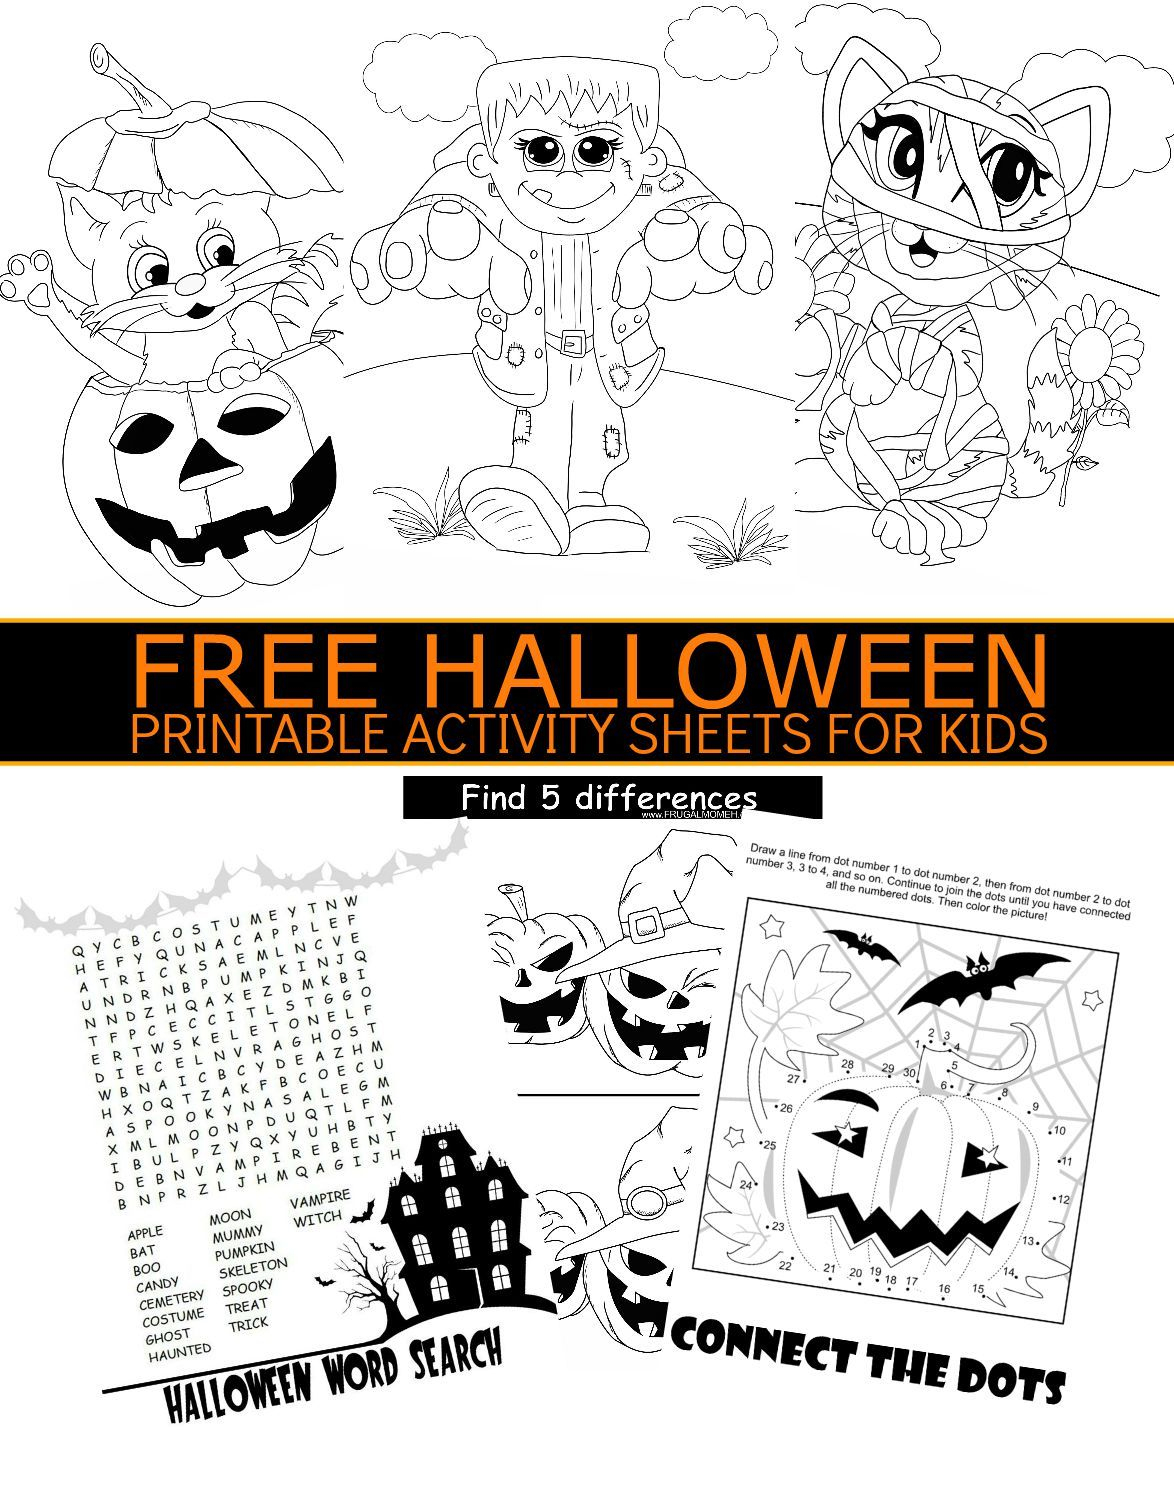 Free Halloween Printable Activity Sheets For Kids | Holidays - Free Printable Halloween Activities